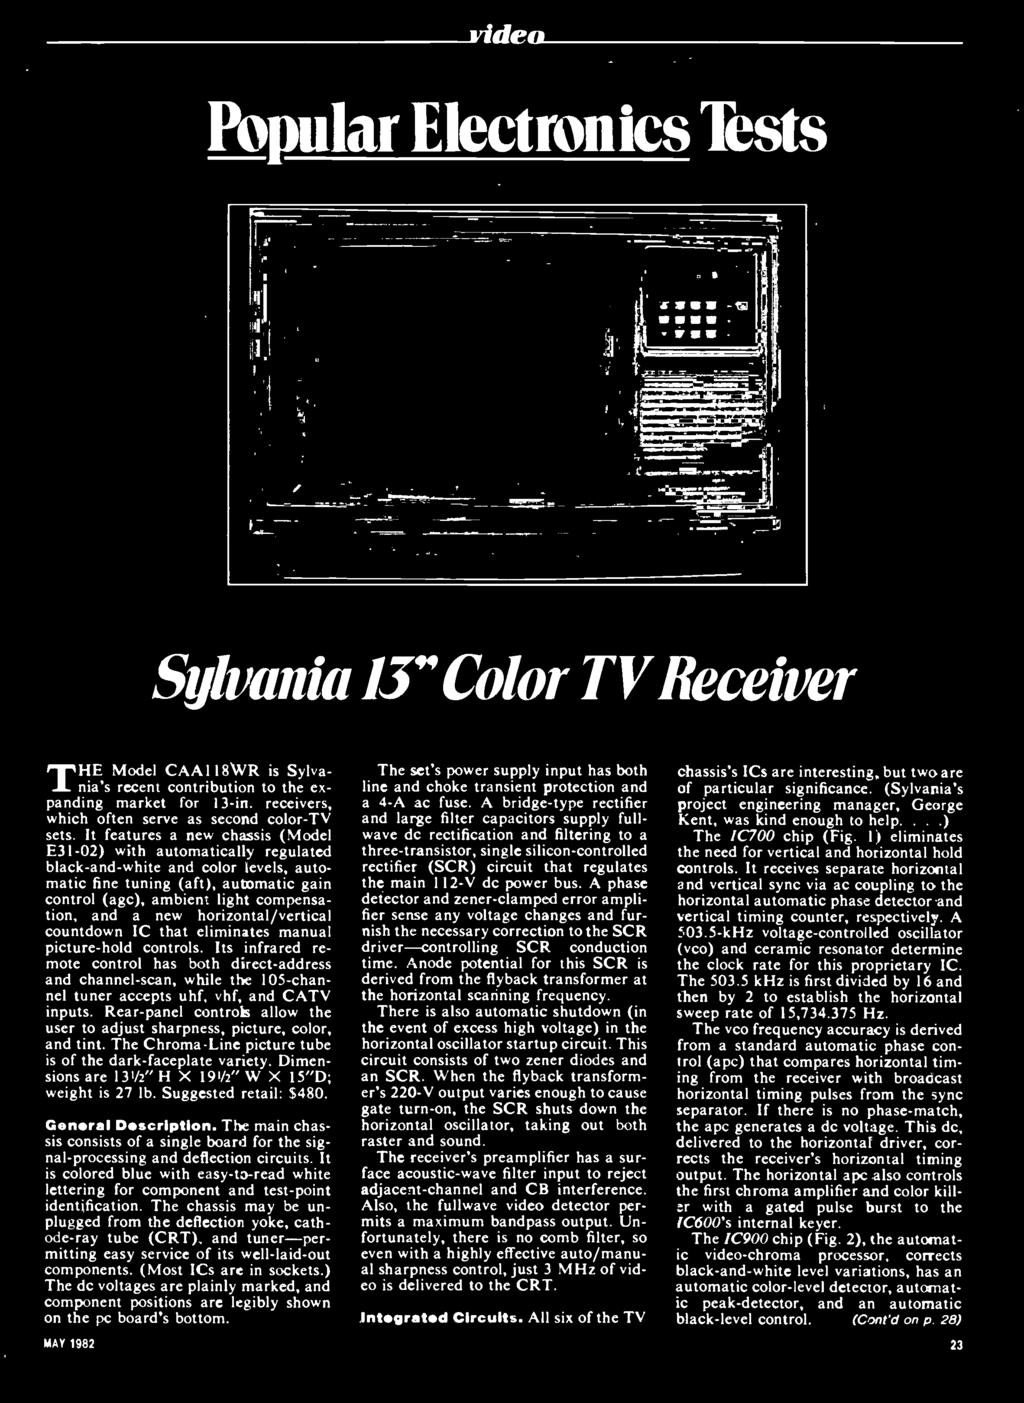 Coniesg Worlds Largest Selling Electronics Magazine May 1982 1 Pdf Electrical Circuit Boardselectrical Boards Video Slot Pcb And Catv Inputs Rear Panel Controls Allow The User To Adjust Sharpness Picture